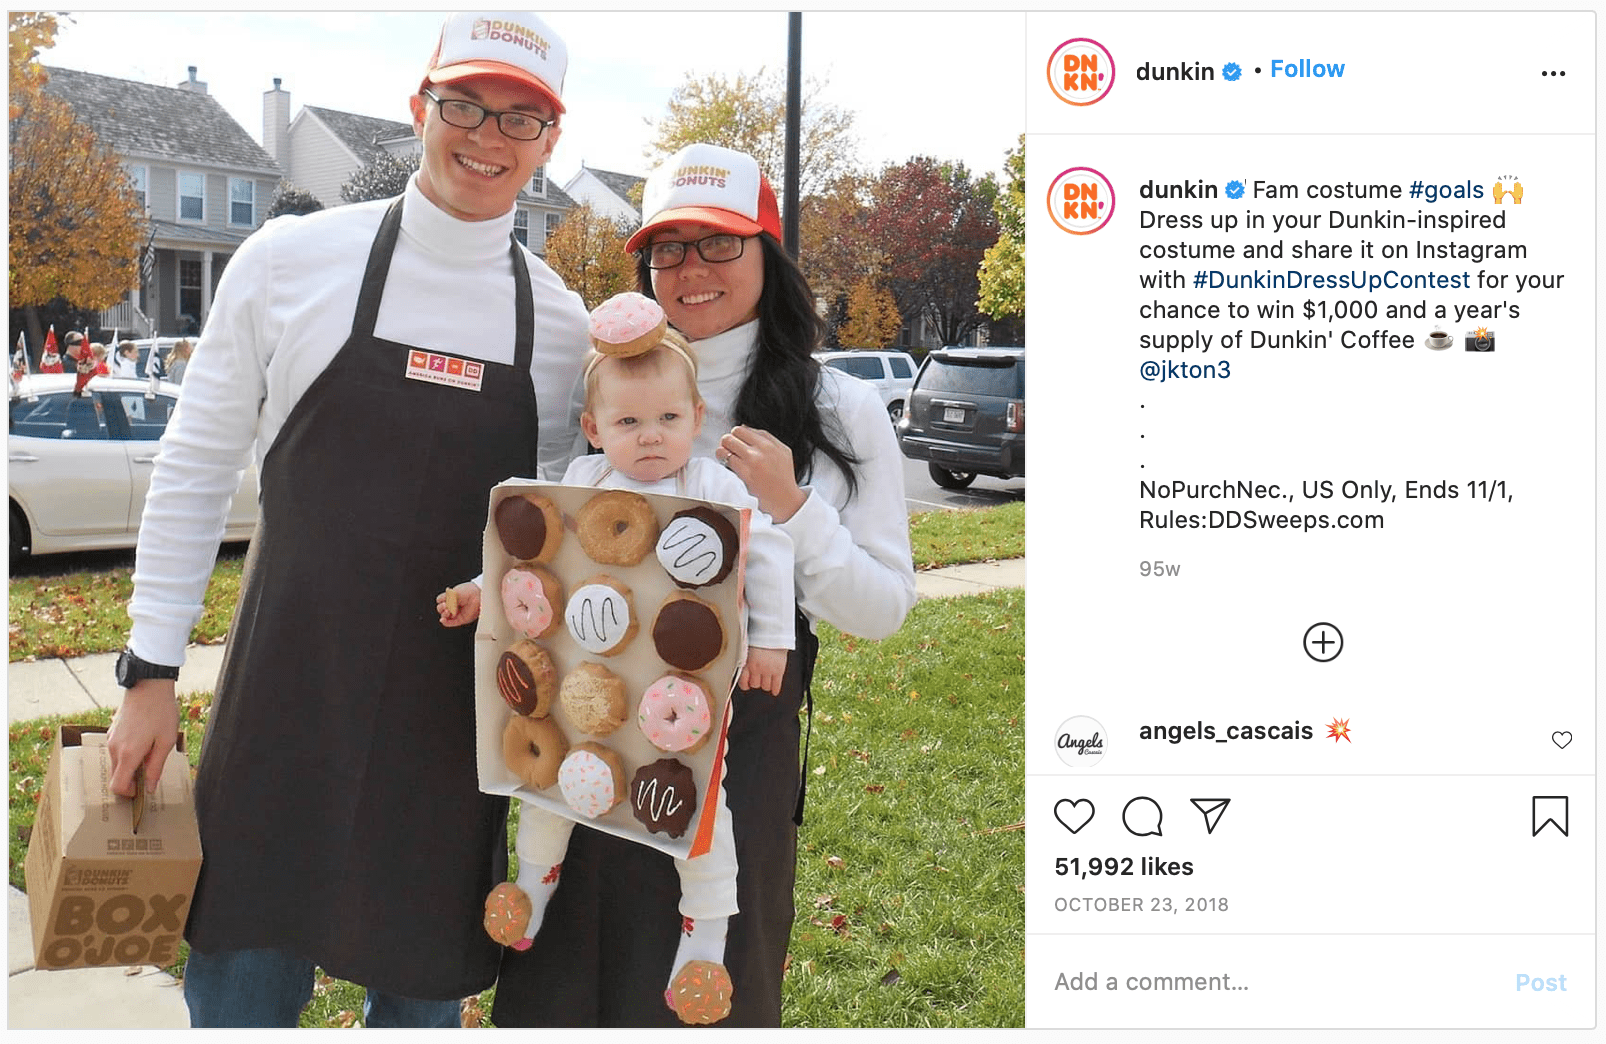 Halloween Marketing contest example post ideas for social media